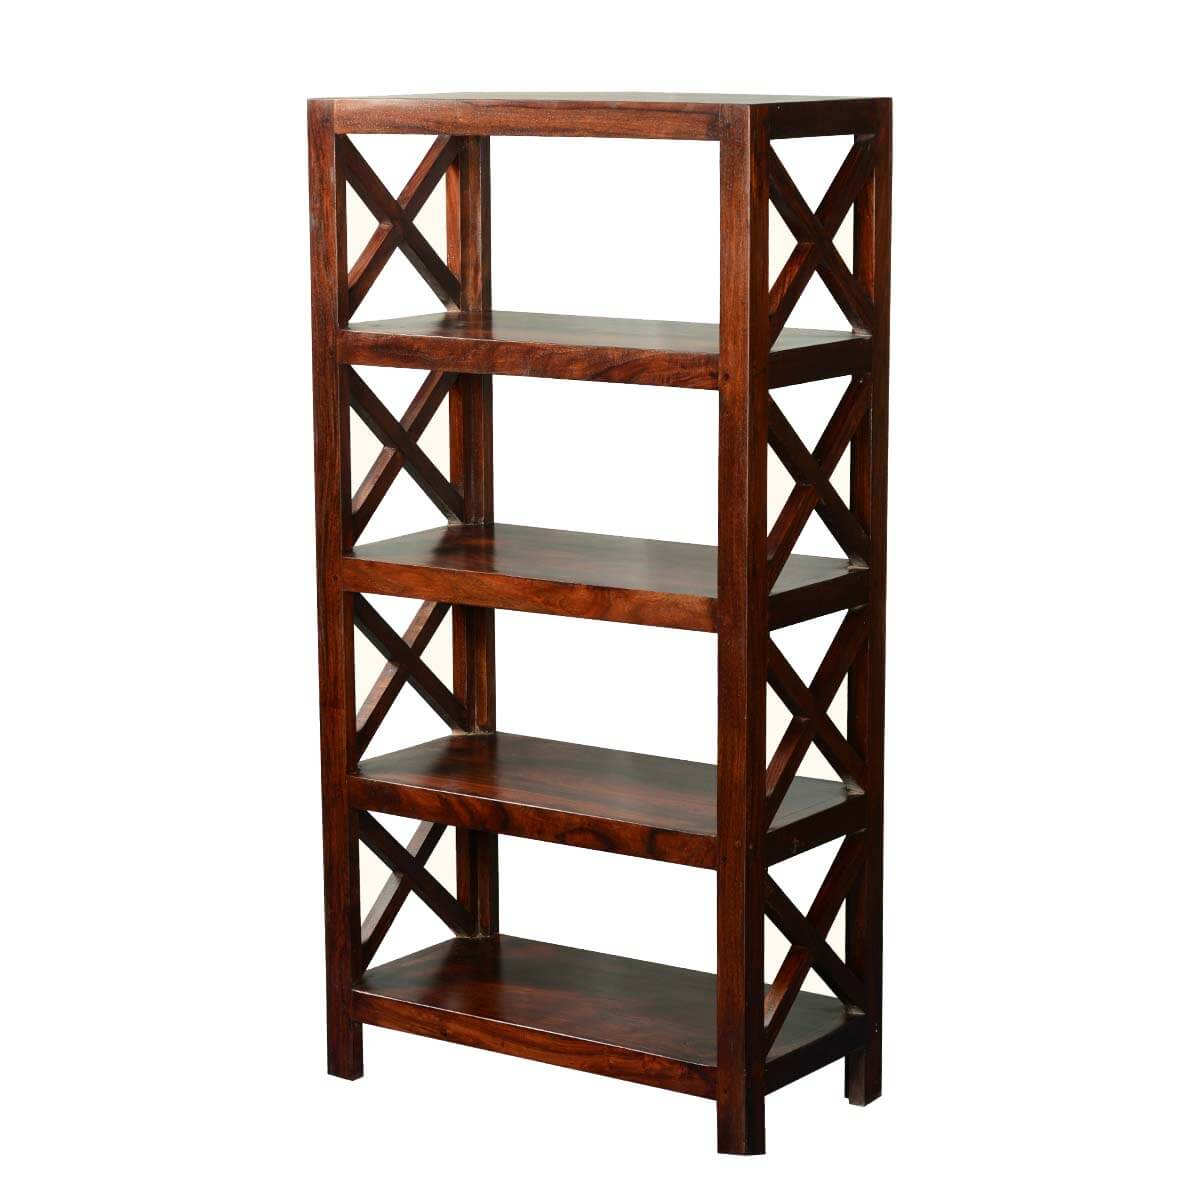 El Cajon 4 Open Shelf Rustic Solid Wood Office Bookcase